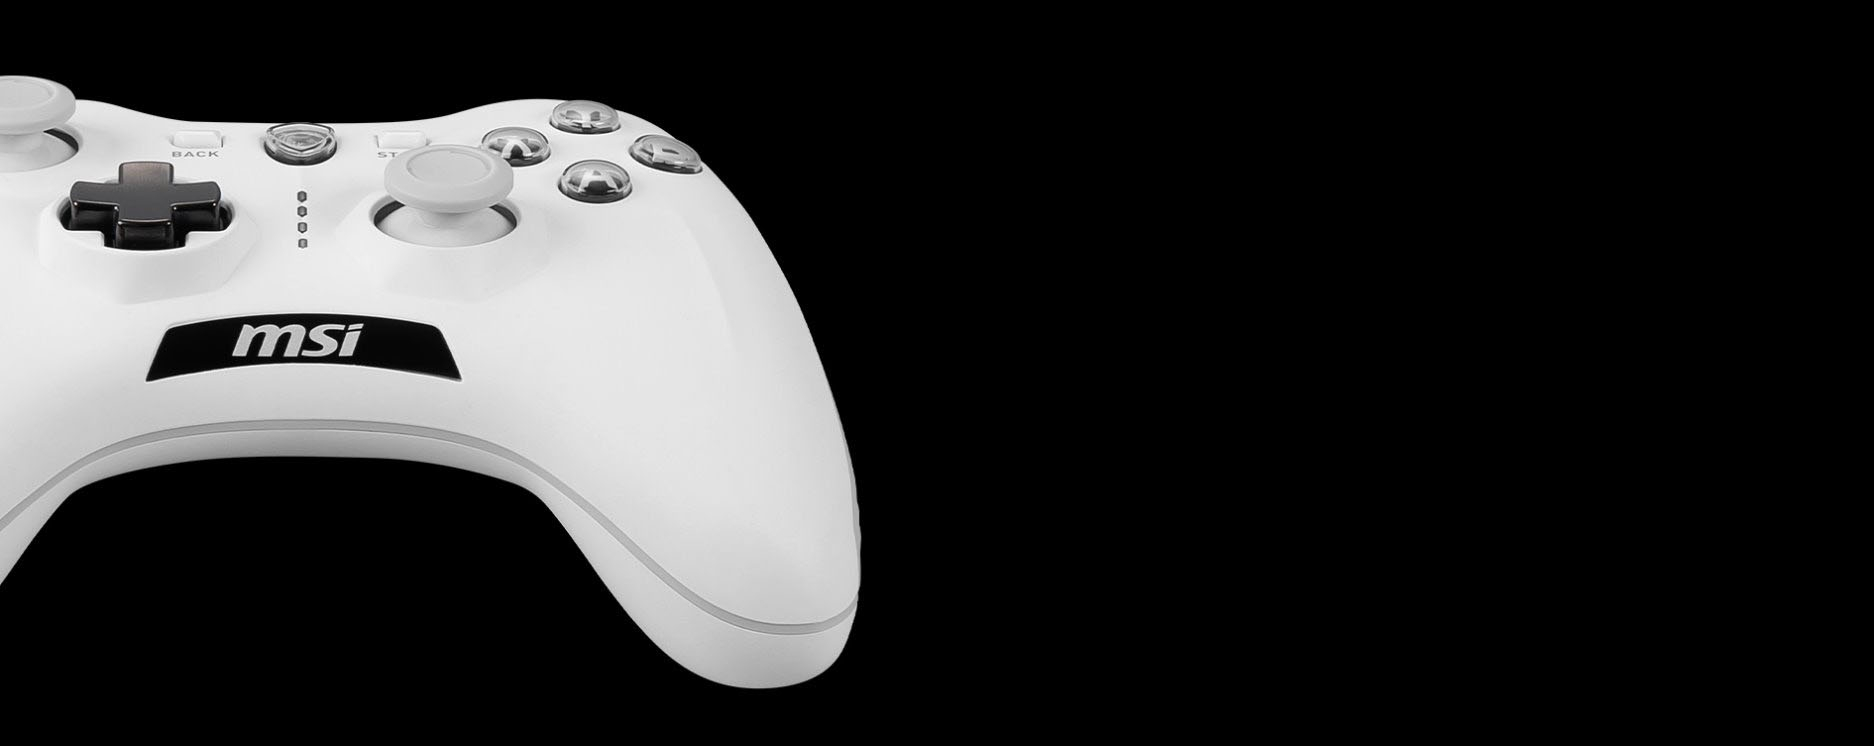 PAD MSI FORCE GC30 V2 WHITE GAMING CONTROLLER7